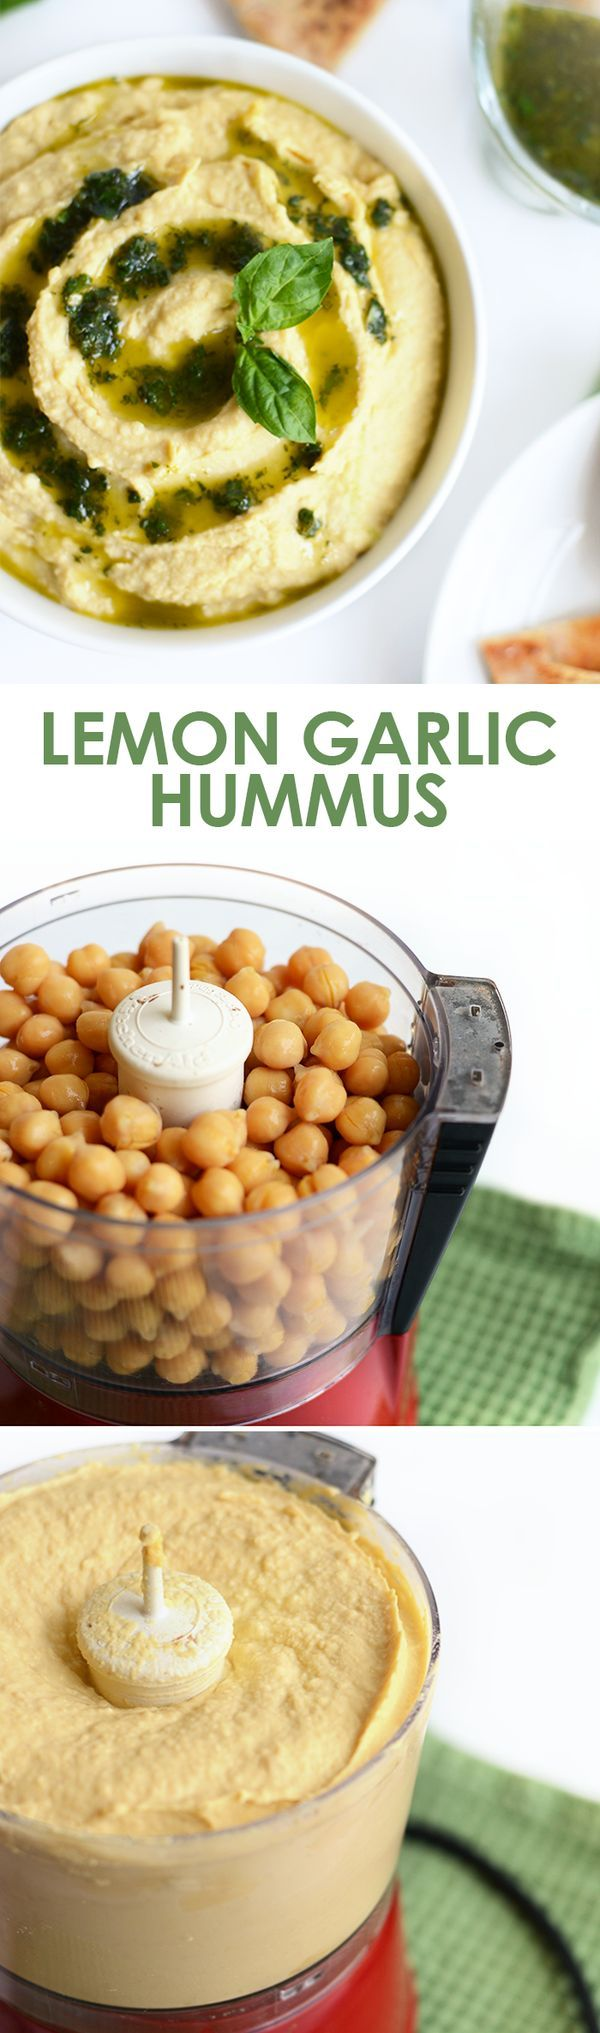 Got 5 minutes? Make this healthy lemon garlic hummus and pair it with whole wheat pita bread for a delicious fiber-filled snack!